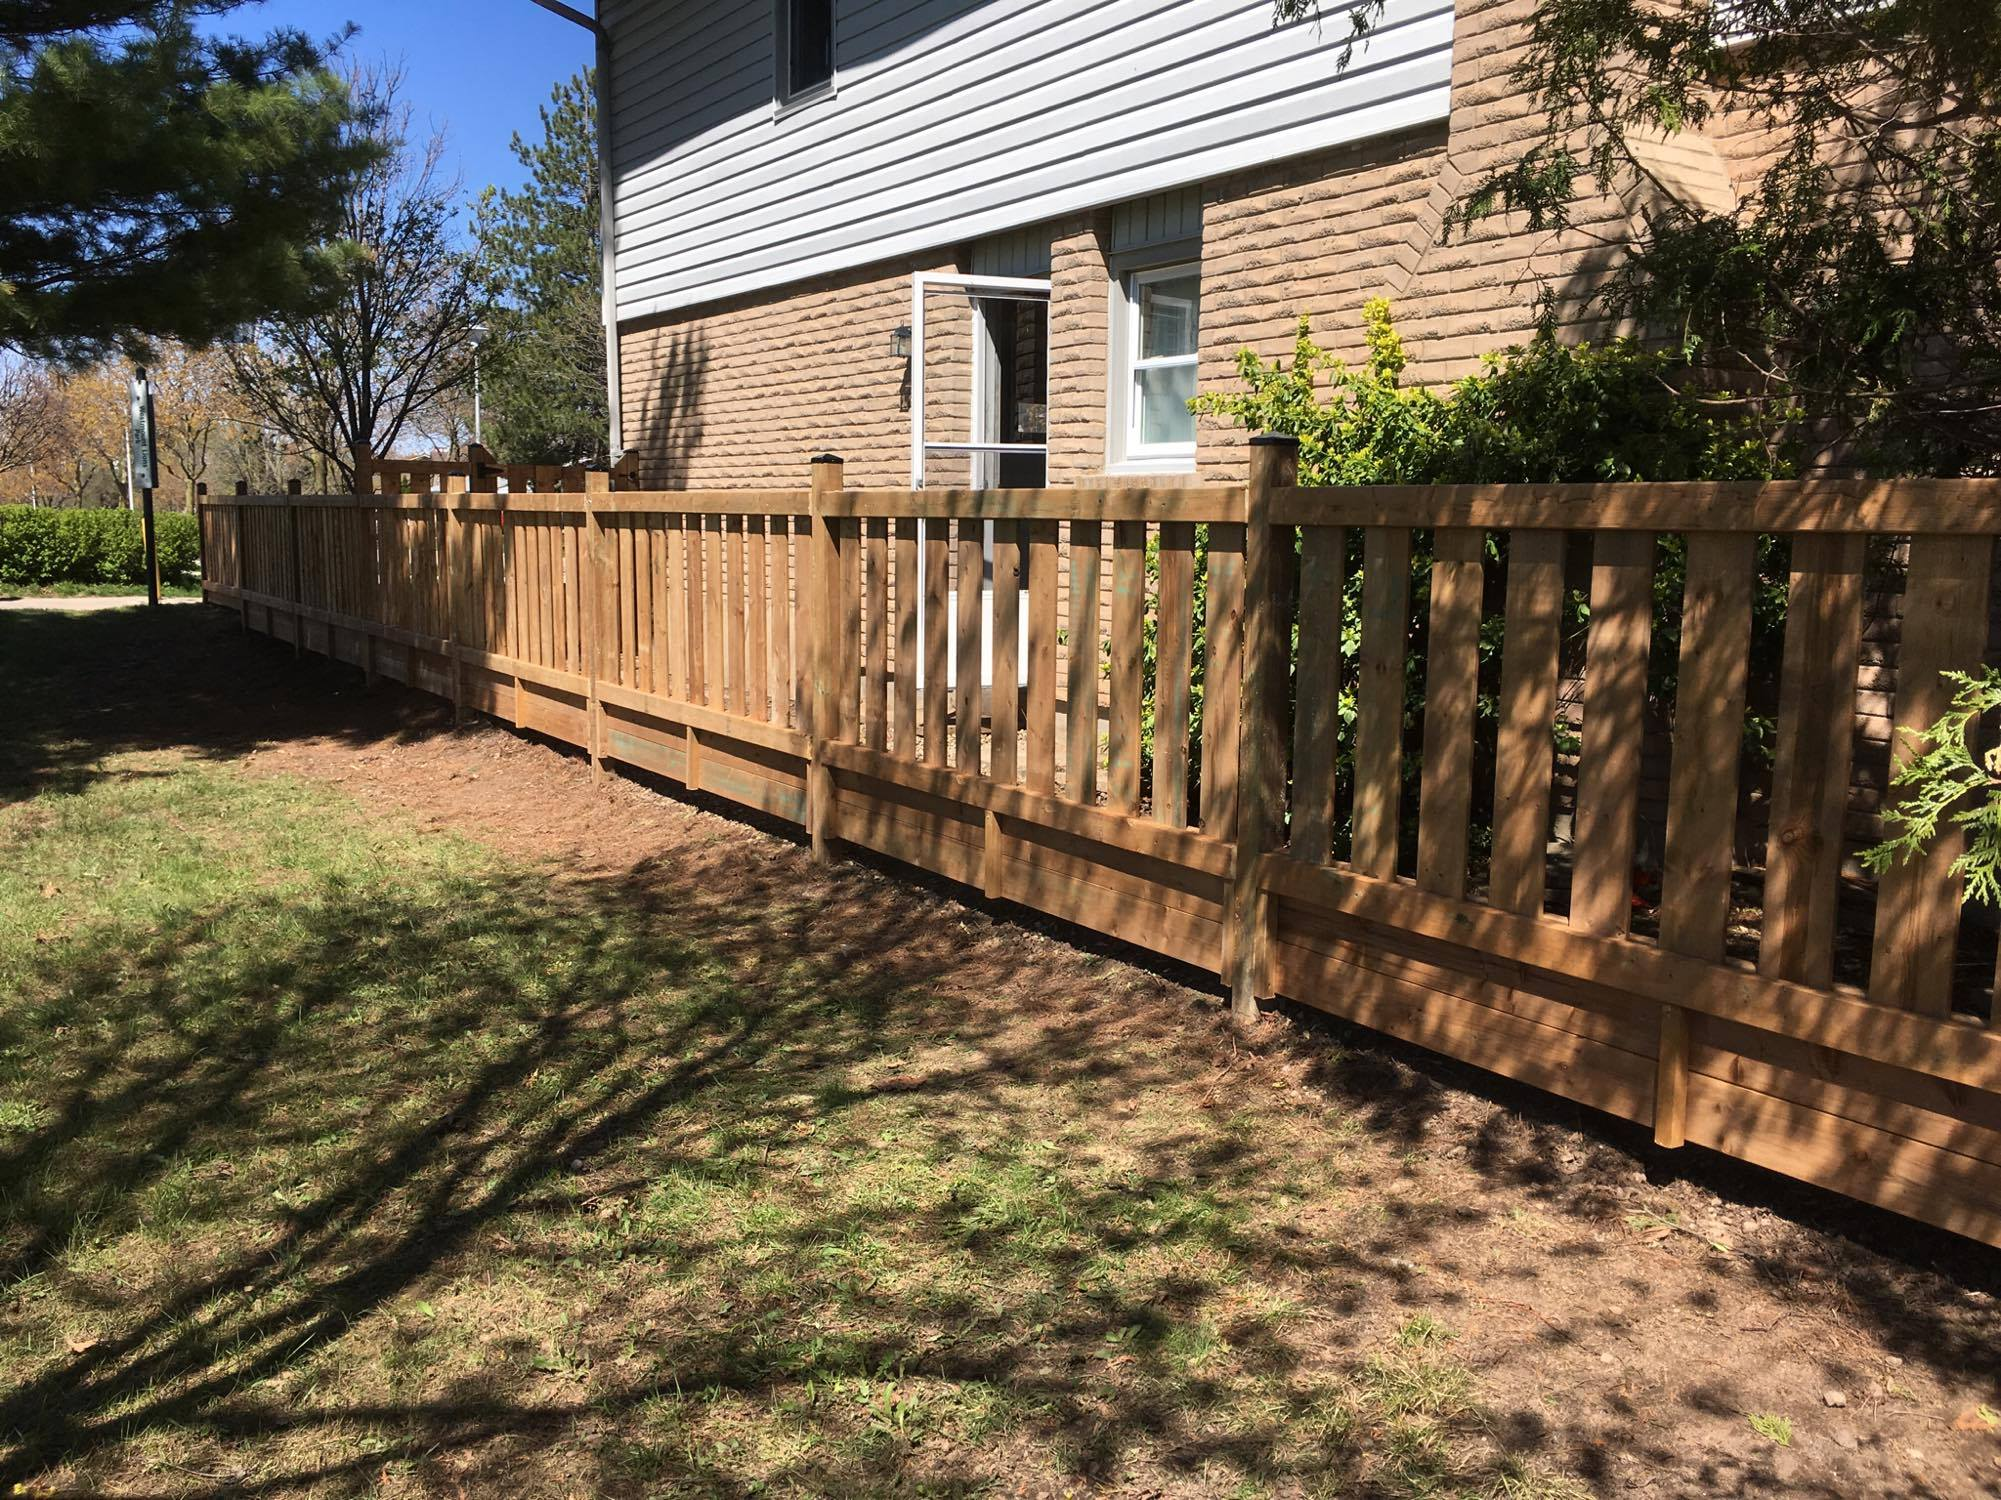 How to Replace a Wooden Fence Post   Hunker